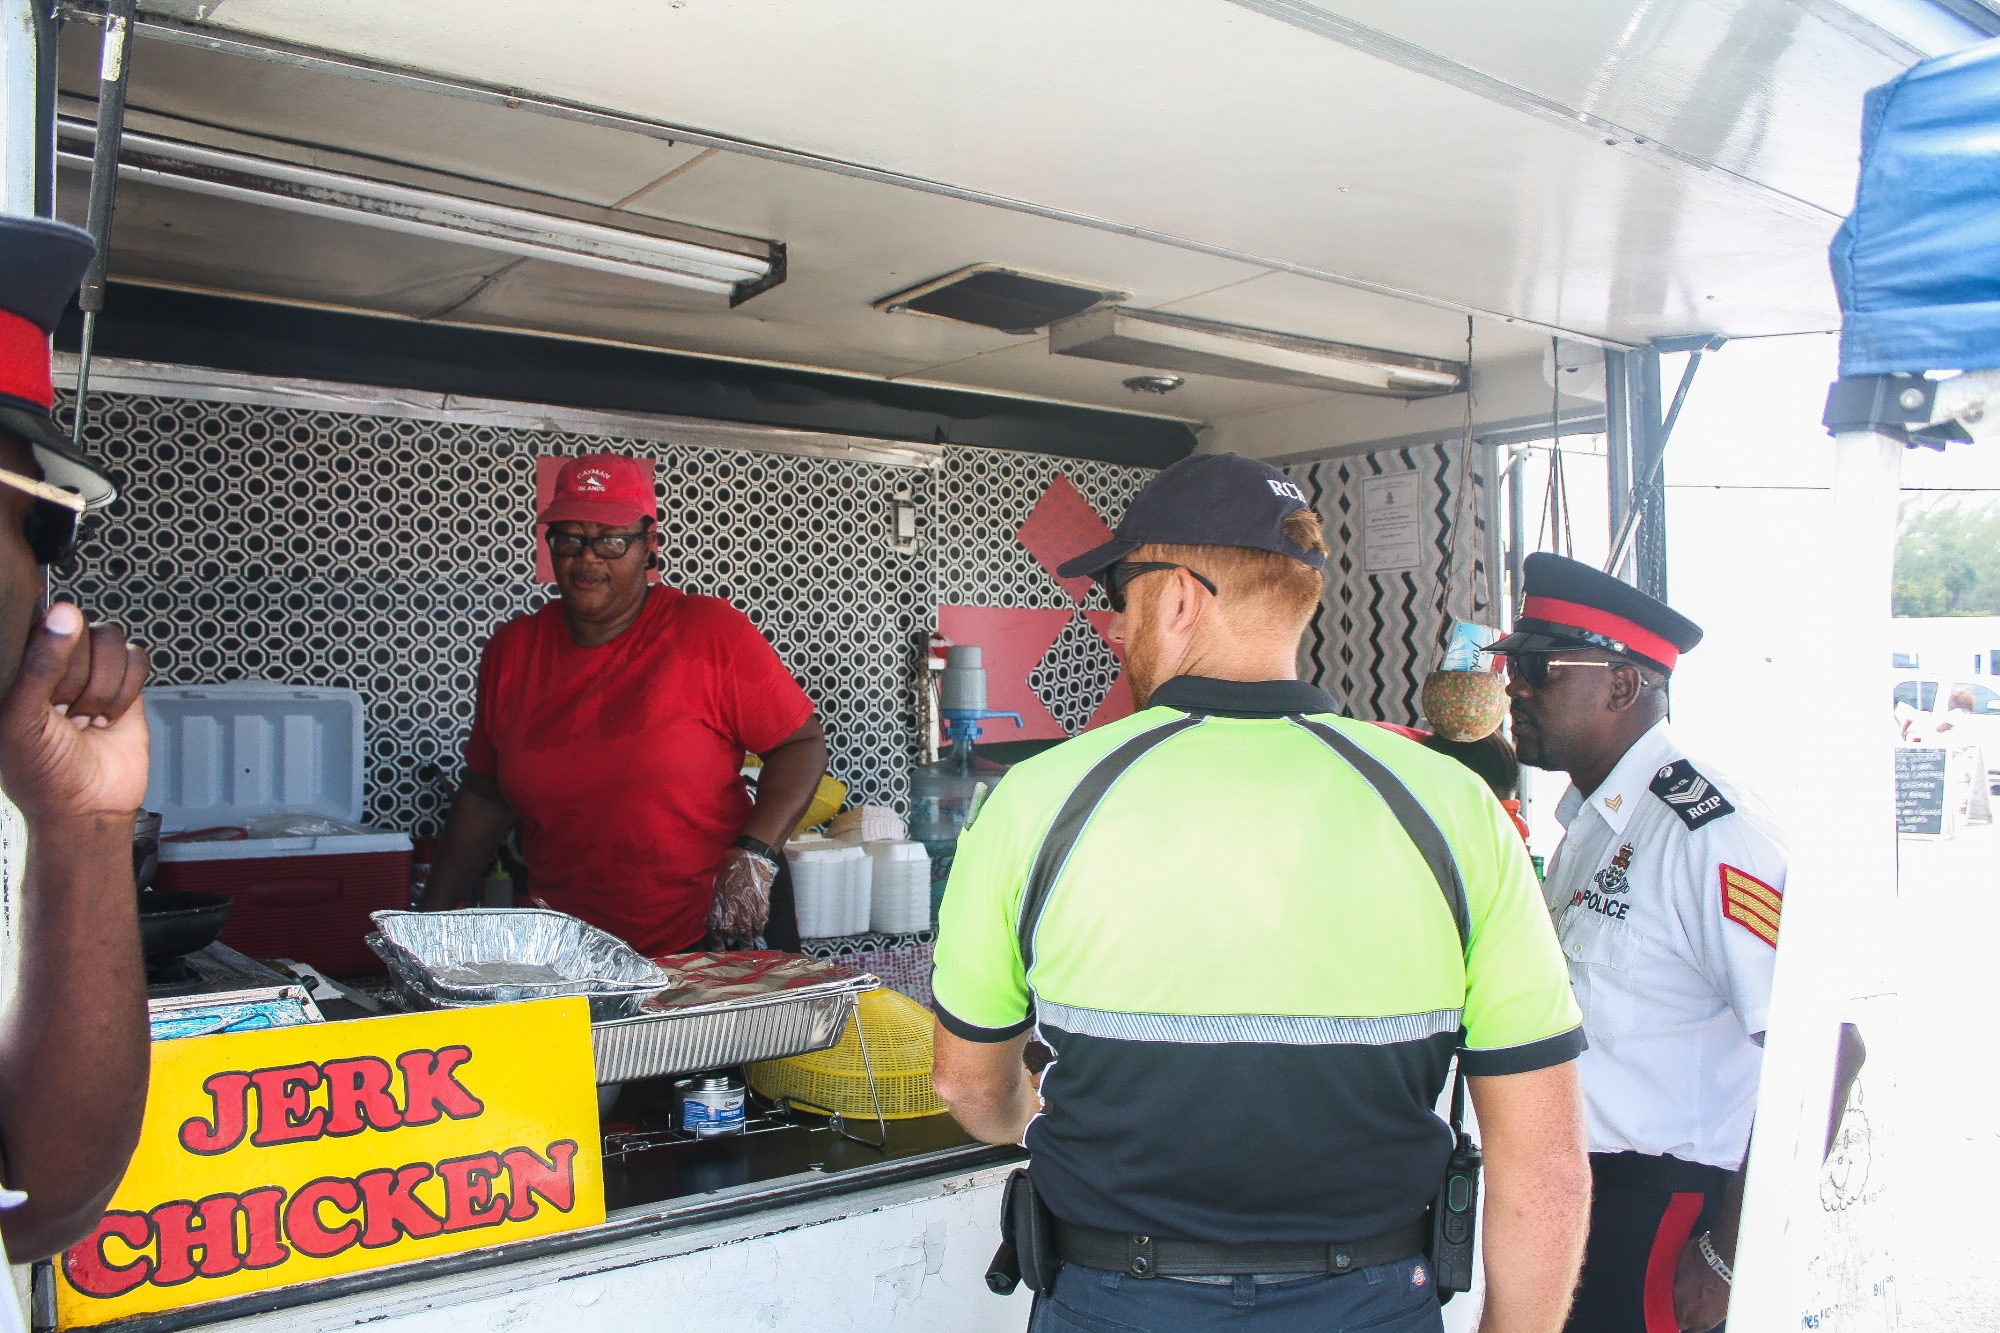 Officers speak to food vendors on the beach.